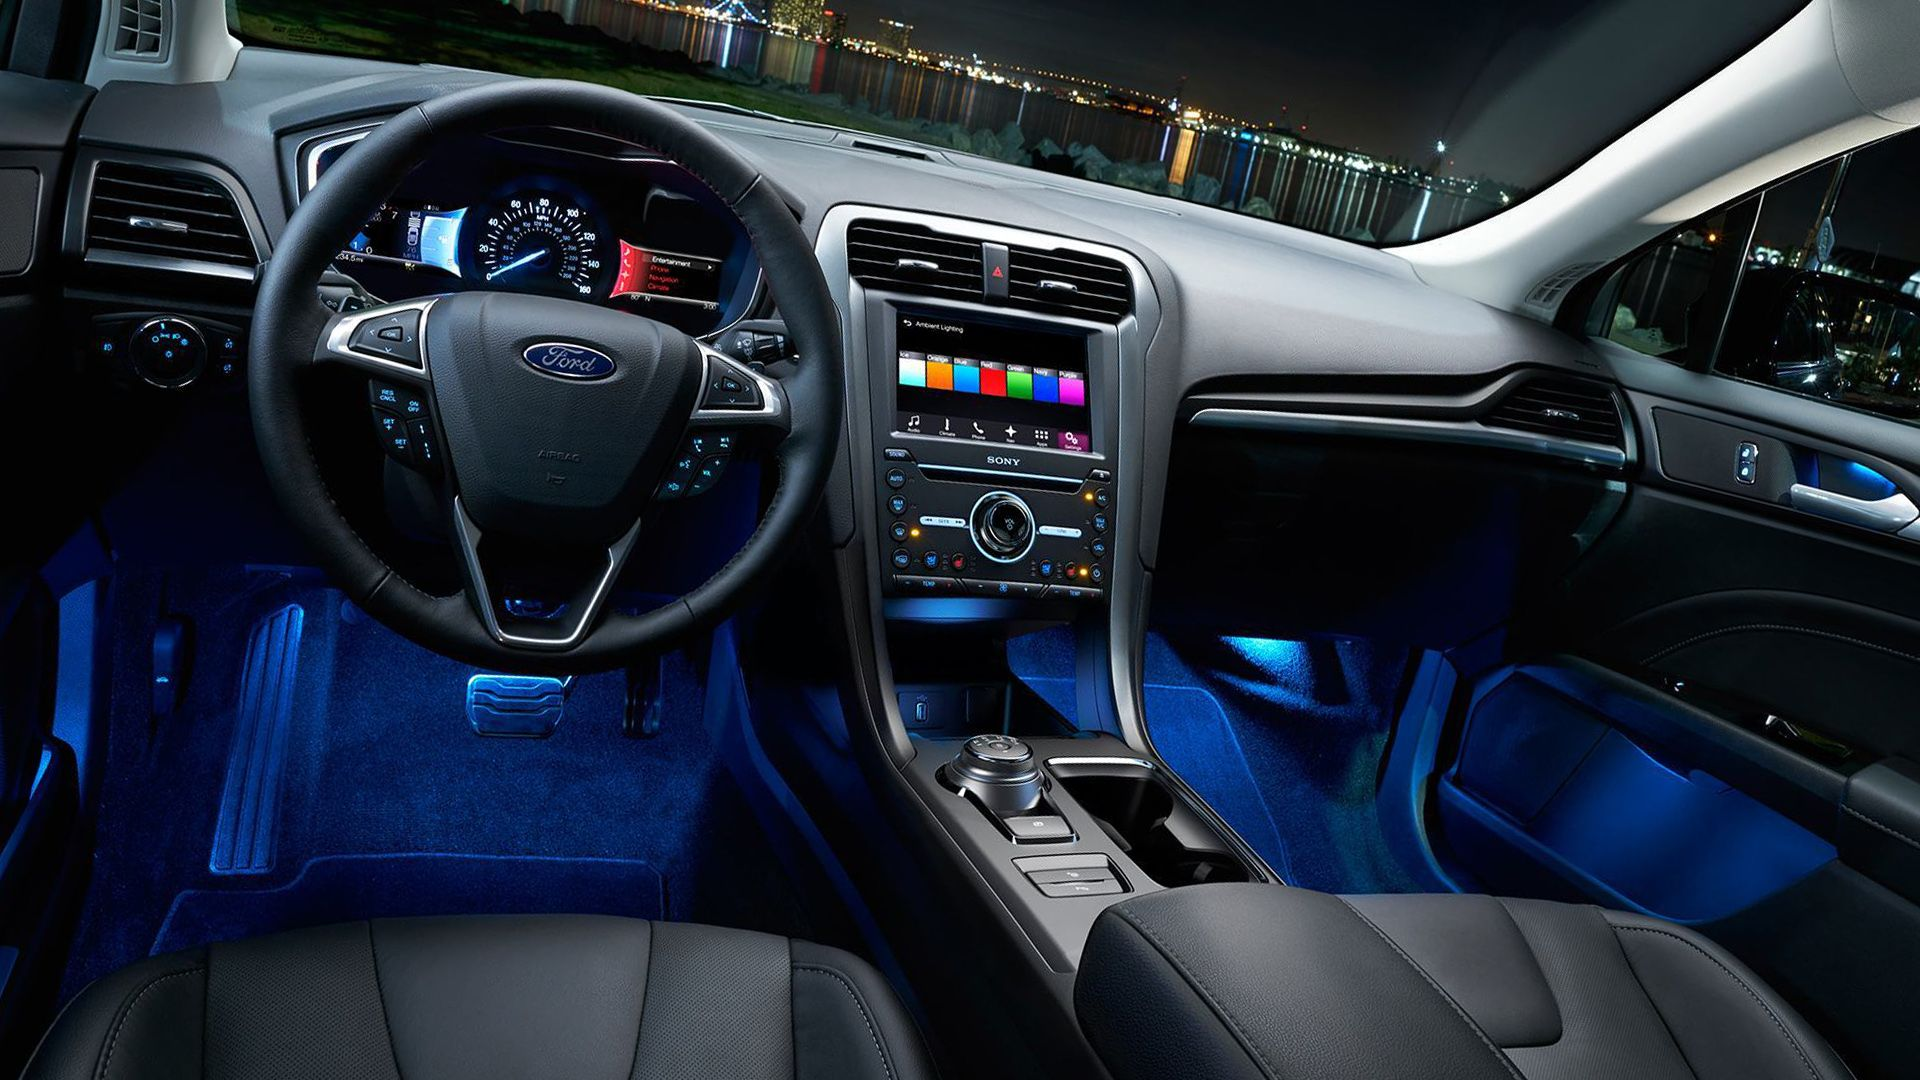 2019 ford mondeo interior design good cars 2018 2019 model year - Ford mondeo interior ...